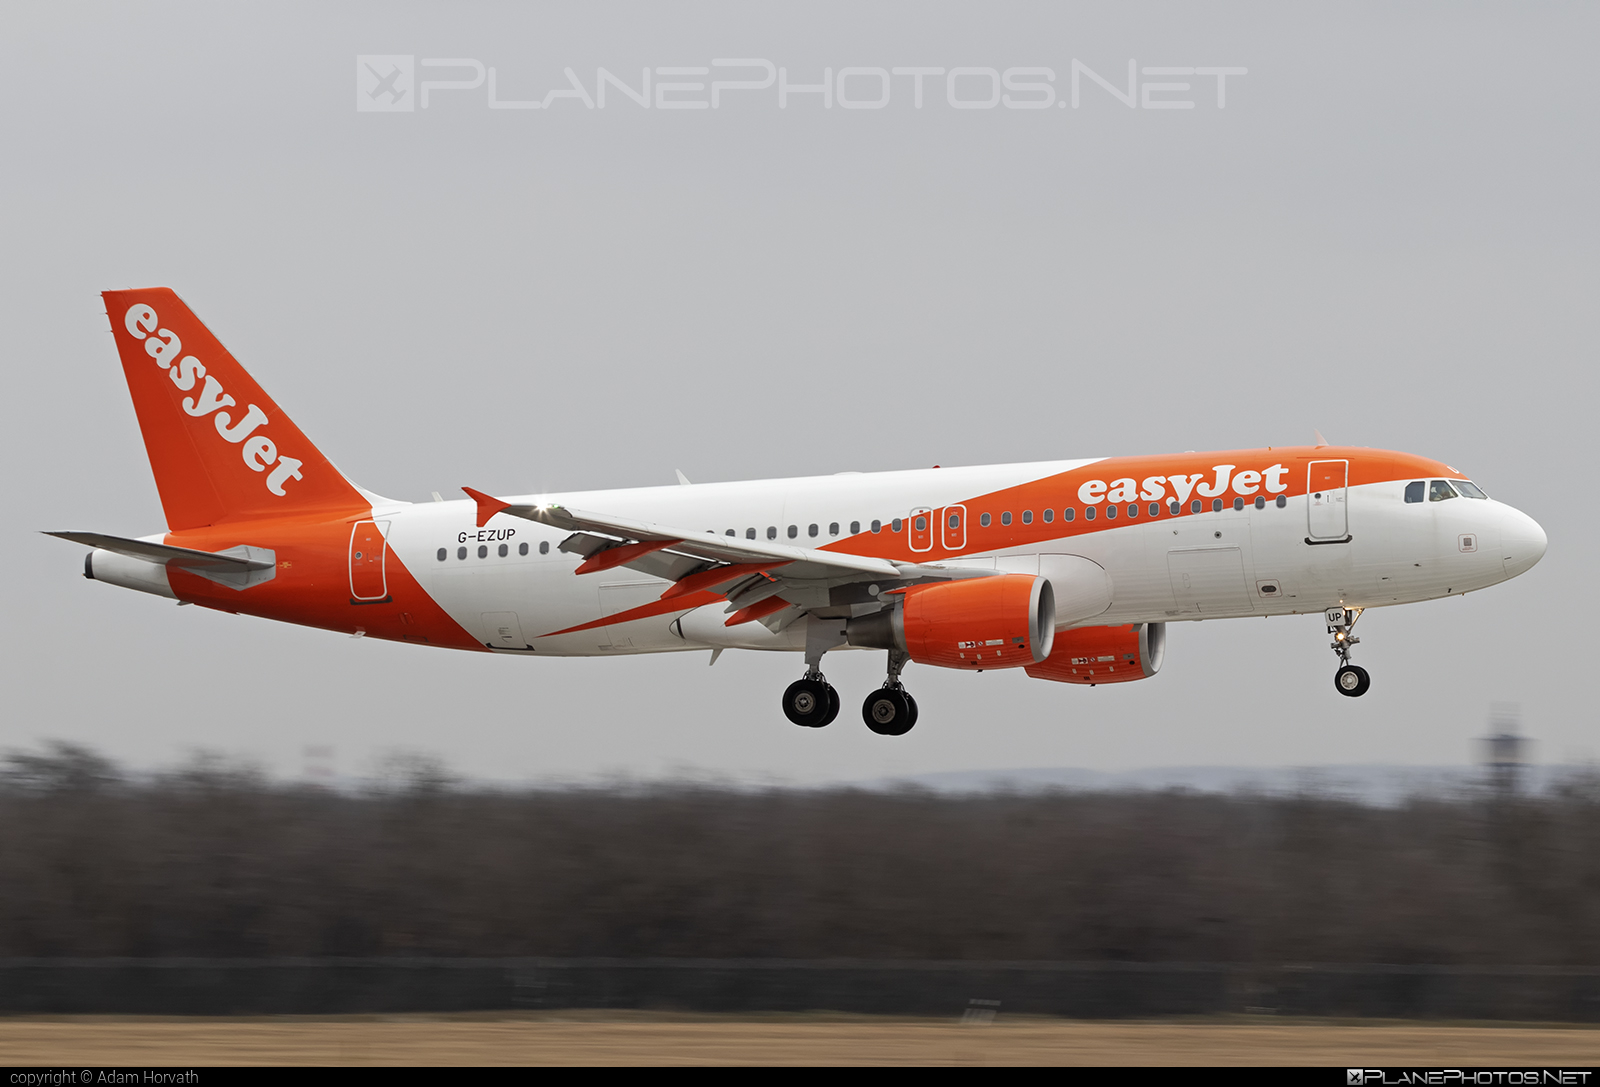 Airbus A320-214 - G-EZUP operated by easyJet #a320 #a320family #airbus #airbus320 #easyjet